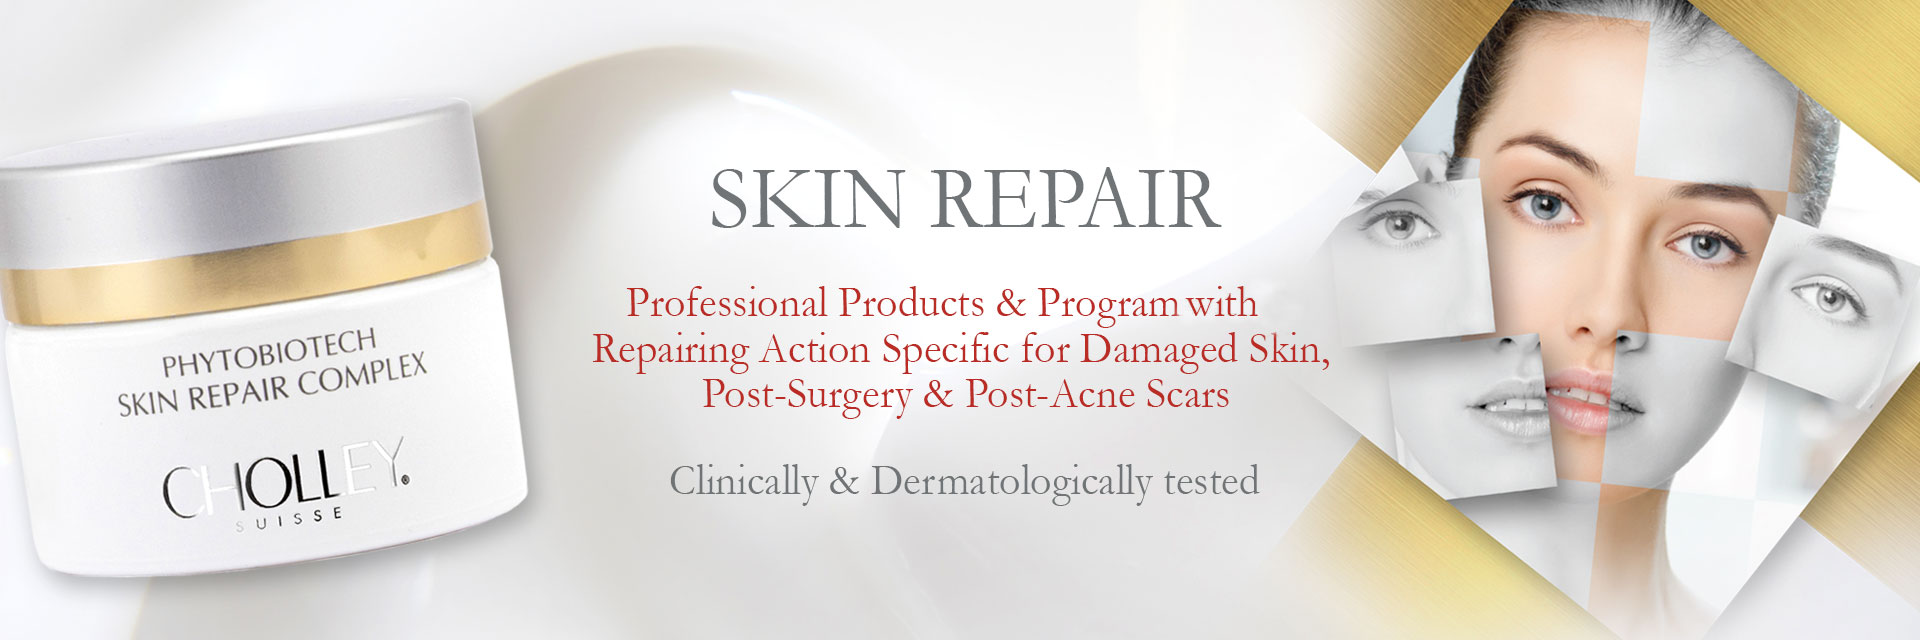 CHOLLEY Best Skin Repair